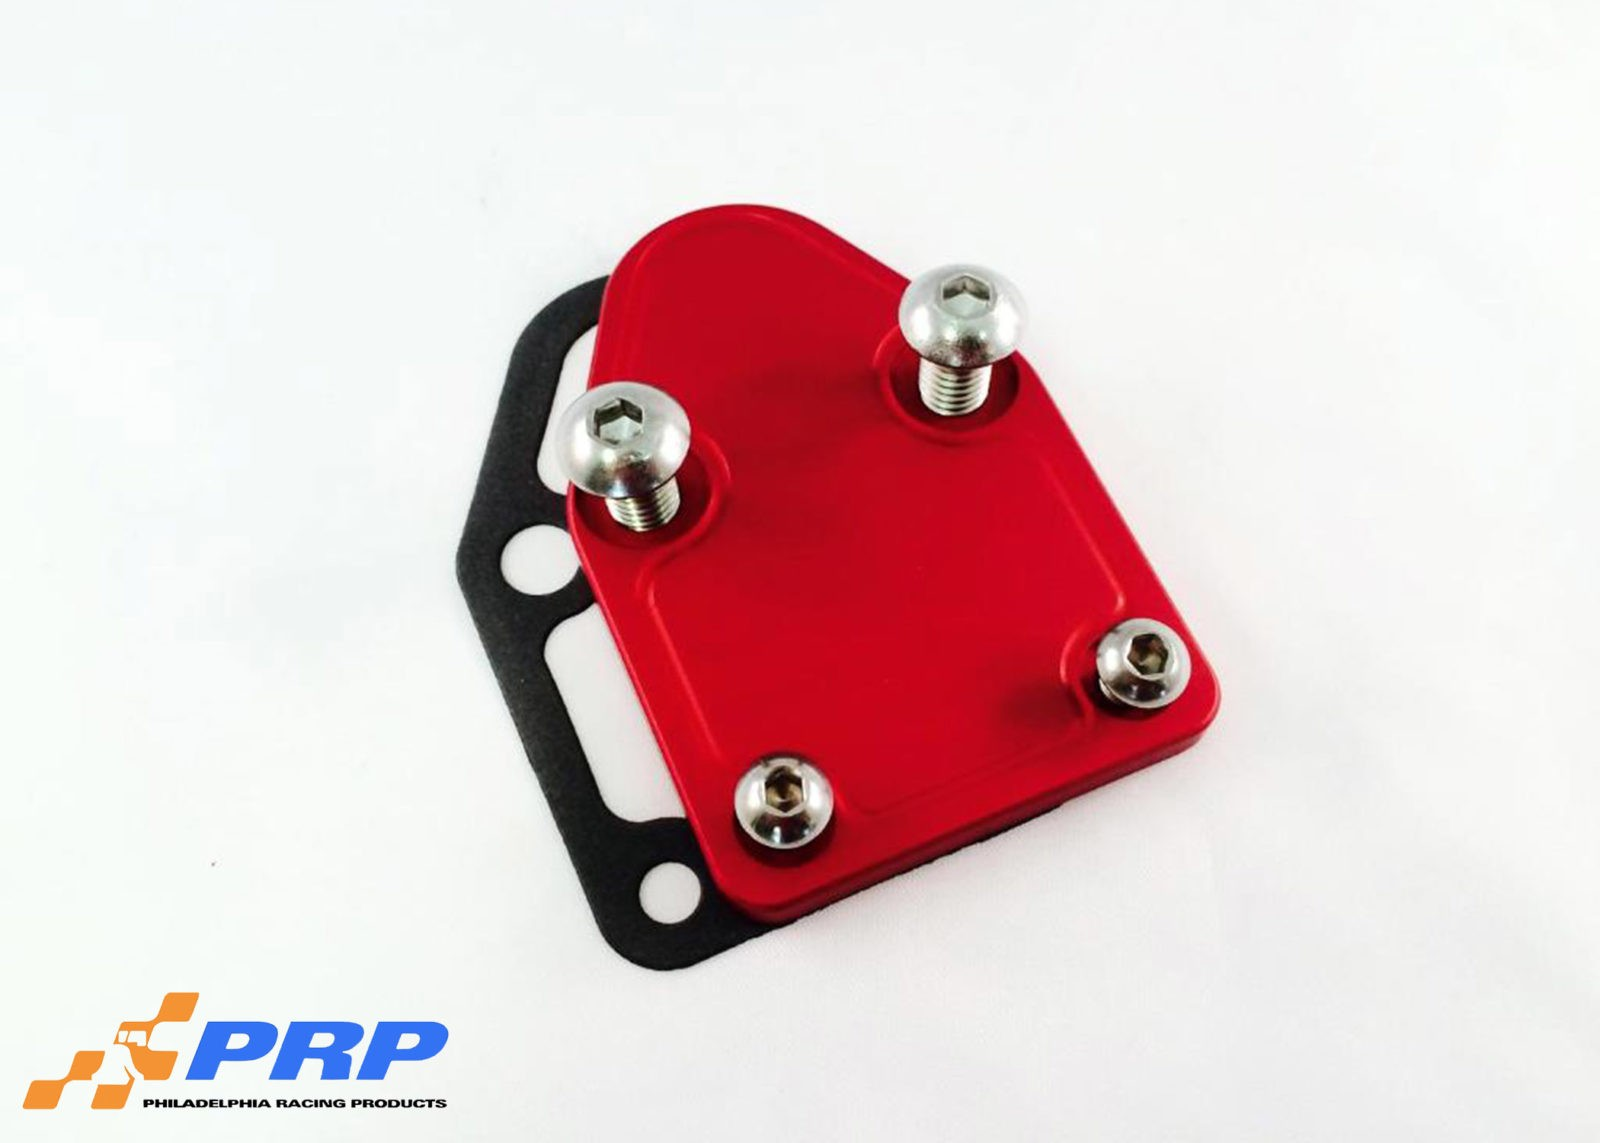 Red SBC Fuel Pump Block-off Plate made by PRP Racing Products